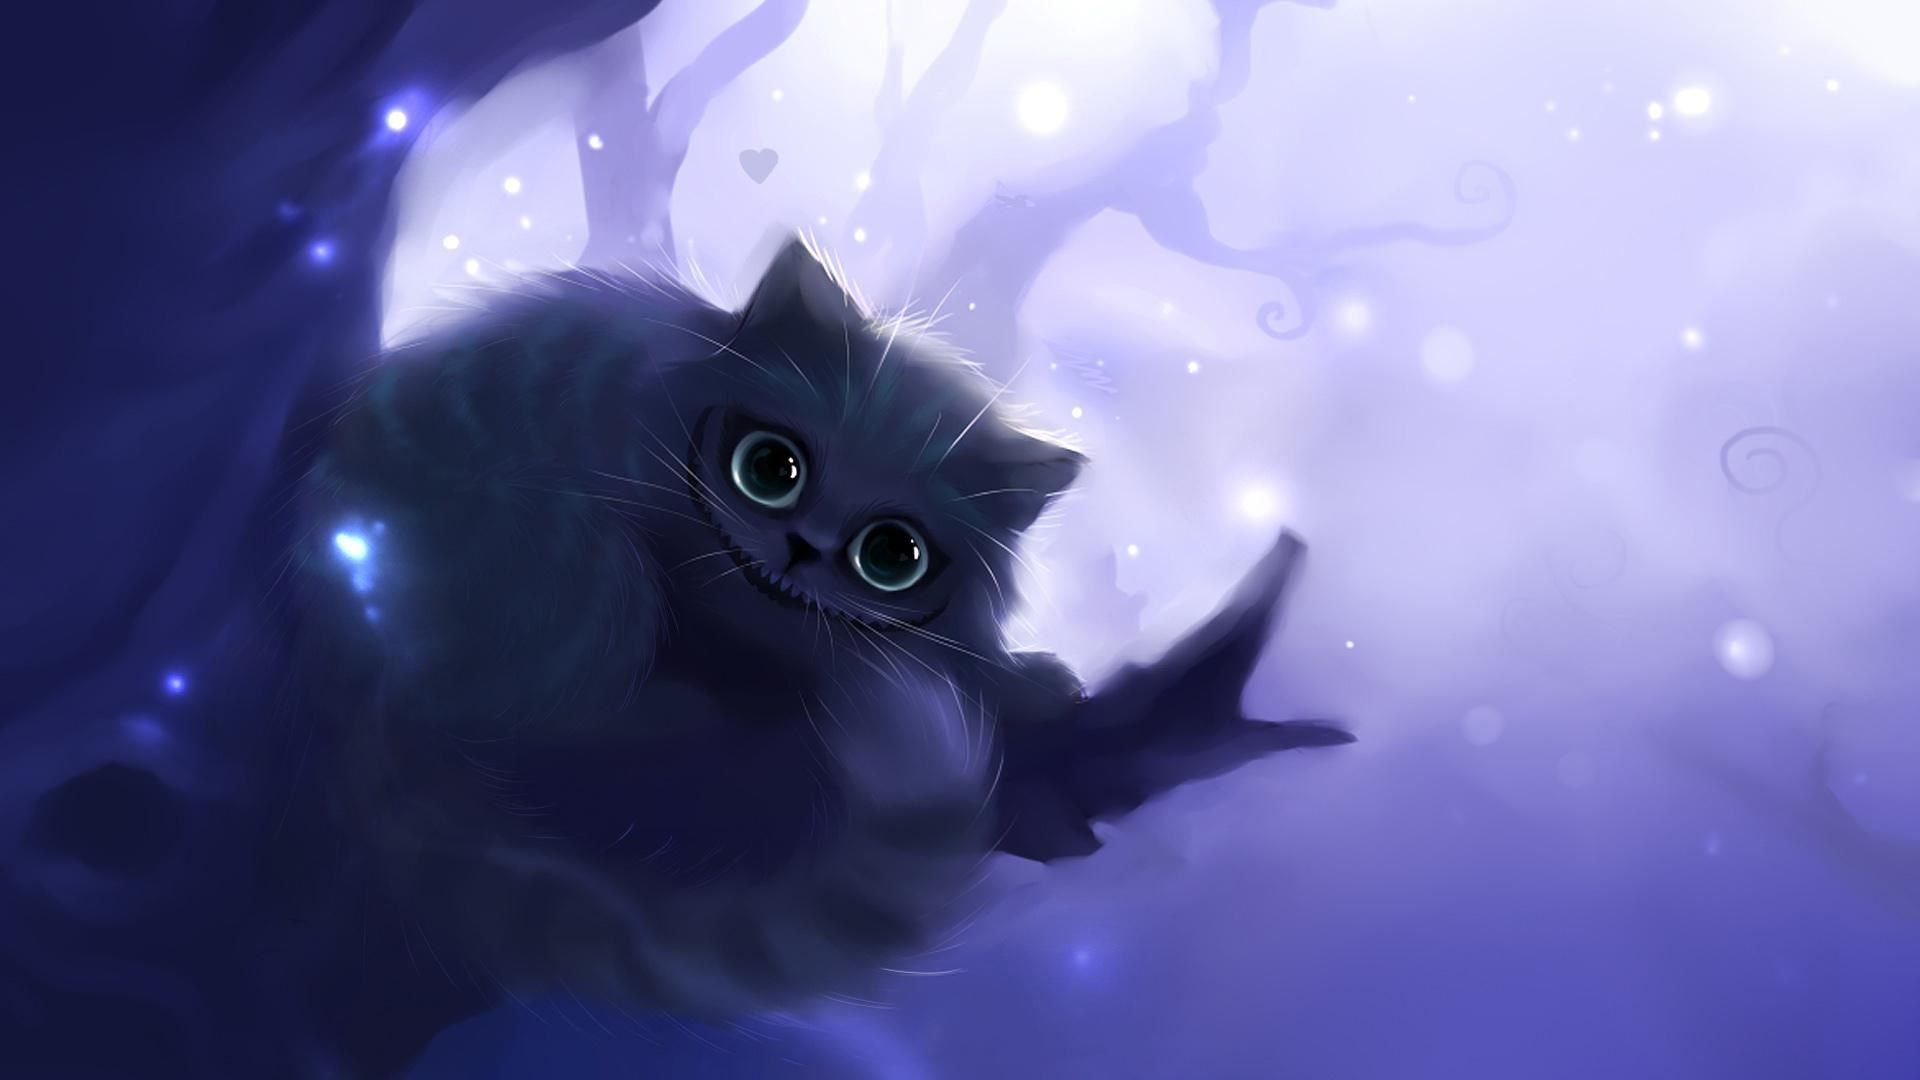 Cheshire Cat Backgrounds Cute Anime Cat Cat Background Cat Wallpaper